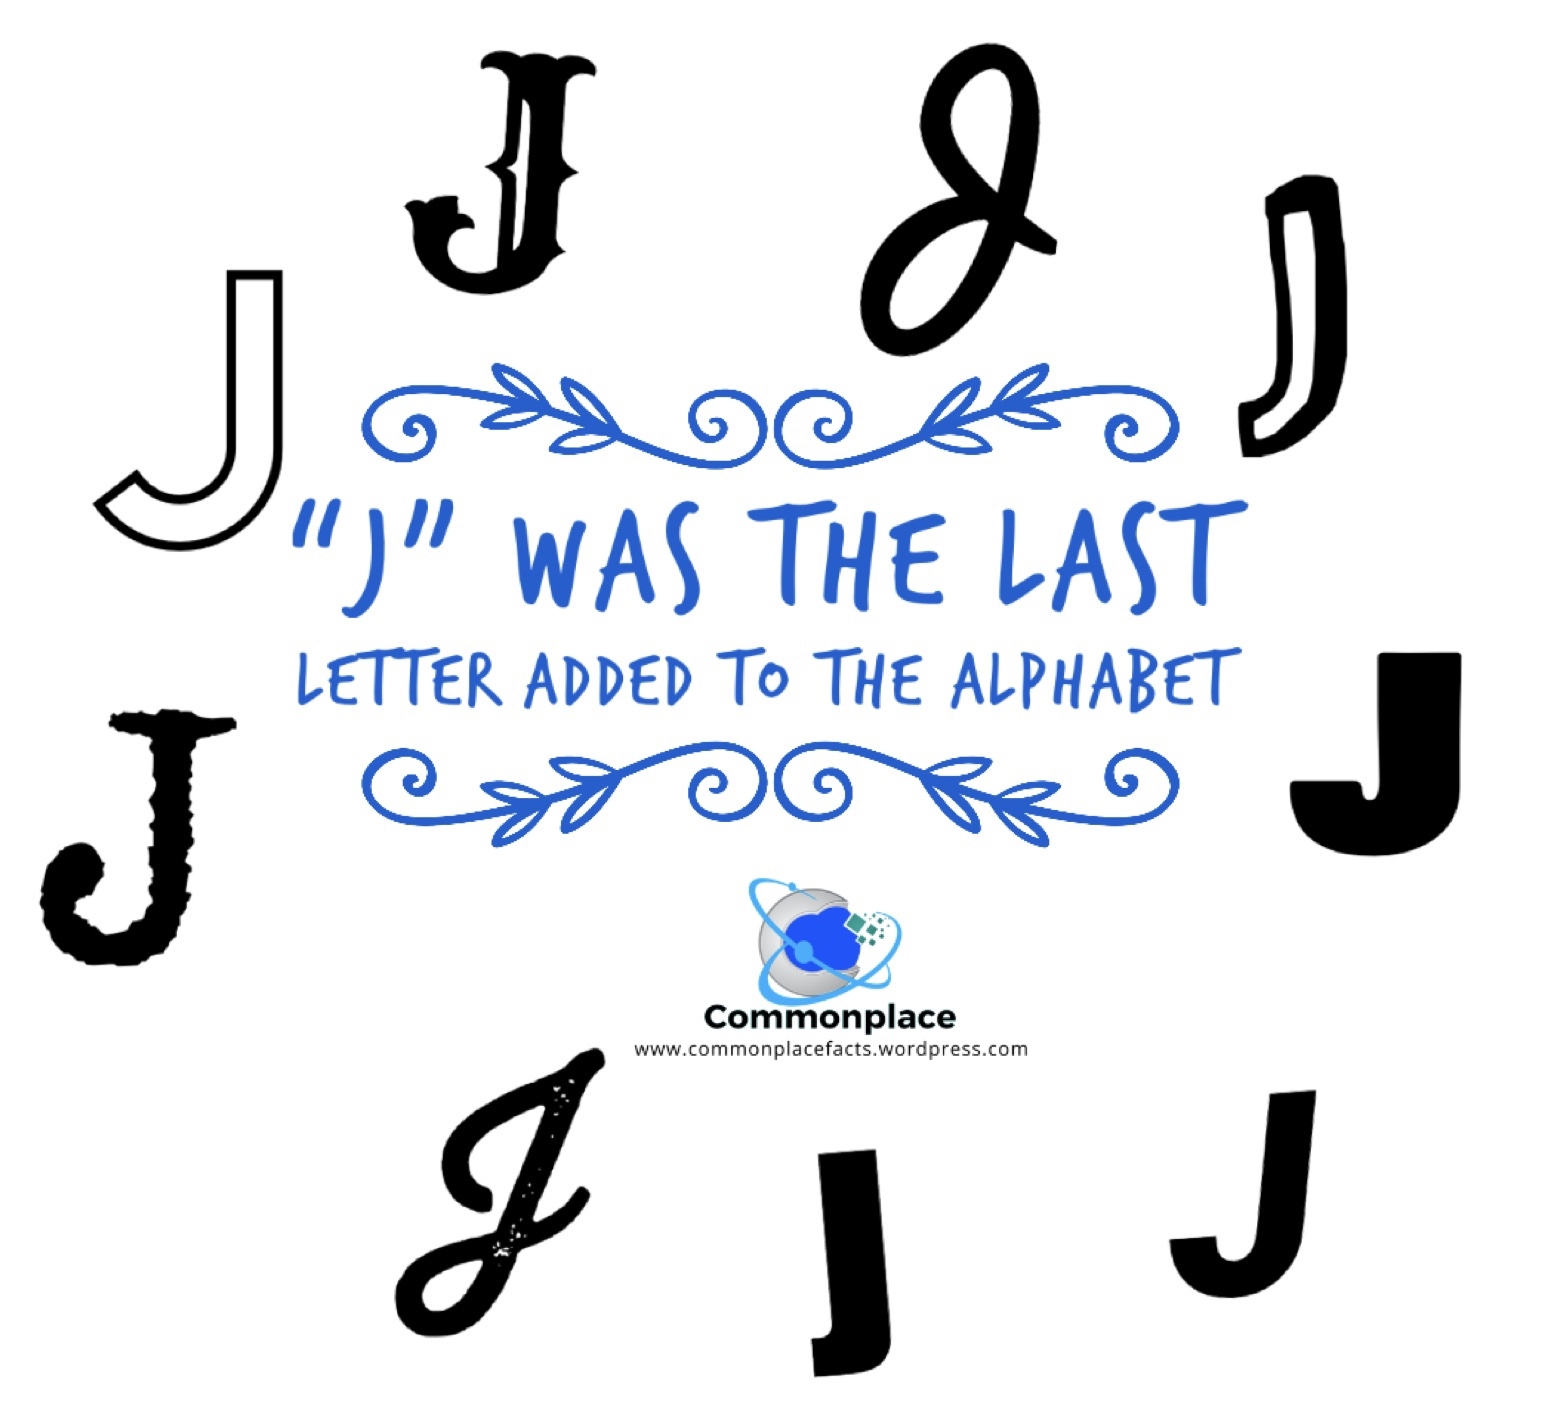 """J"" was the last letter added to the alphabet"